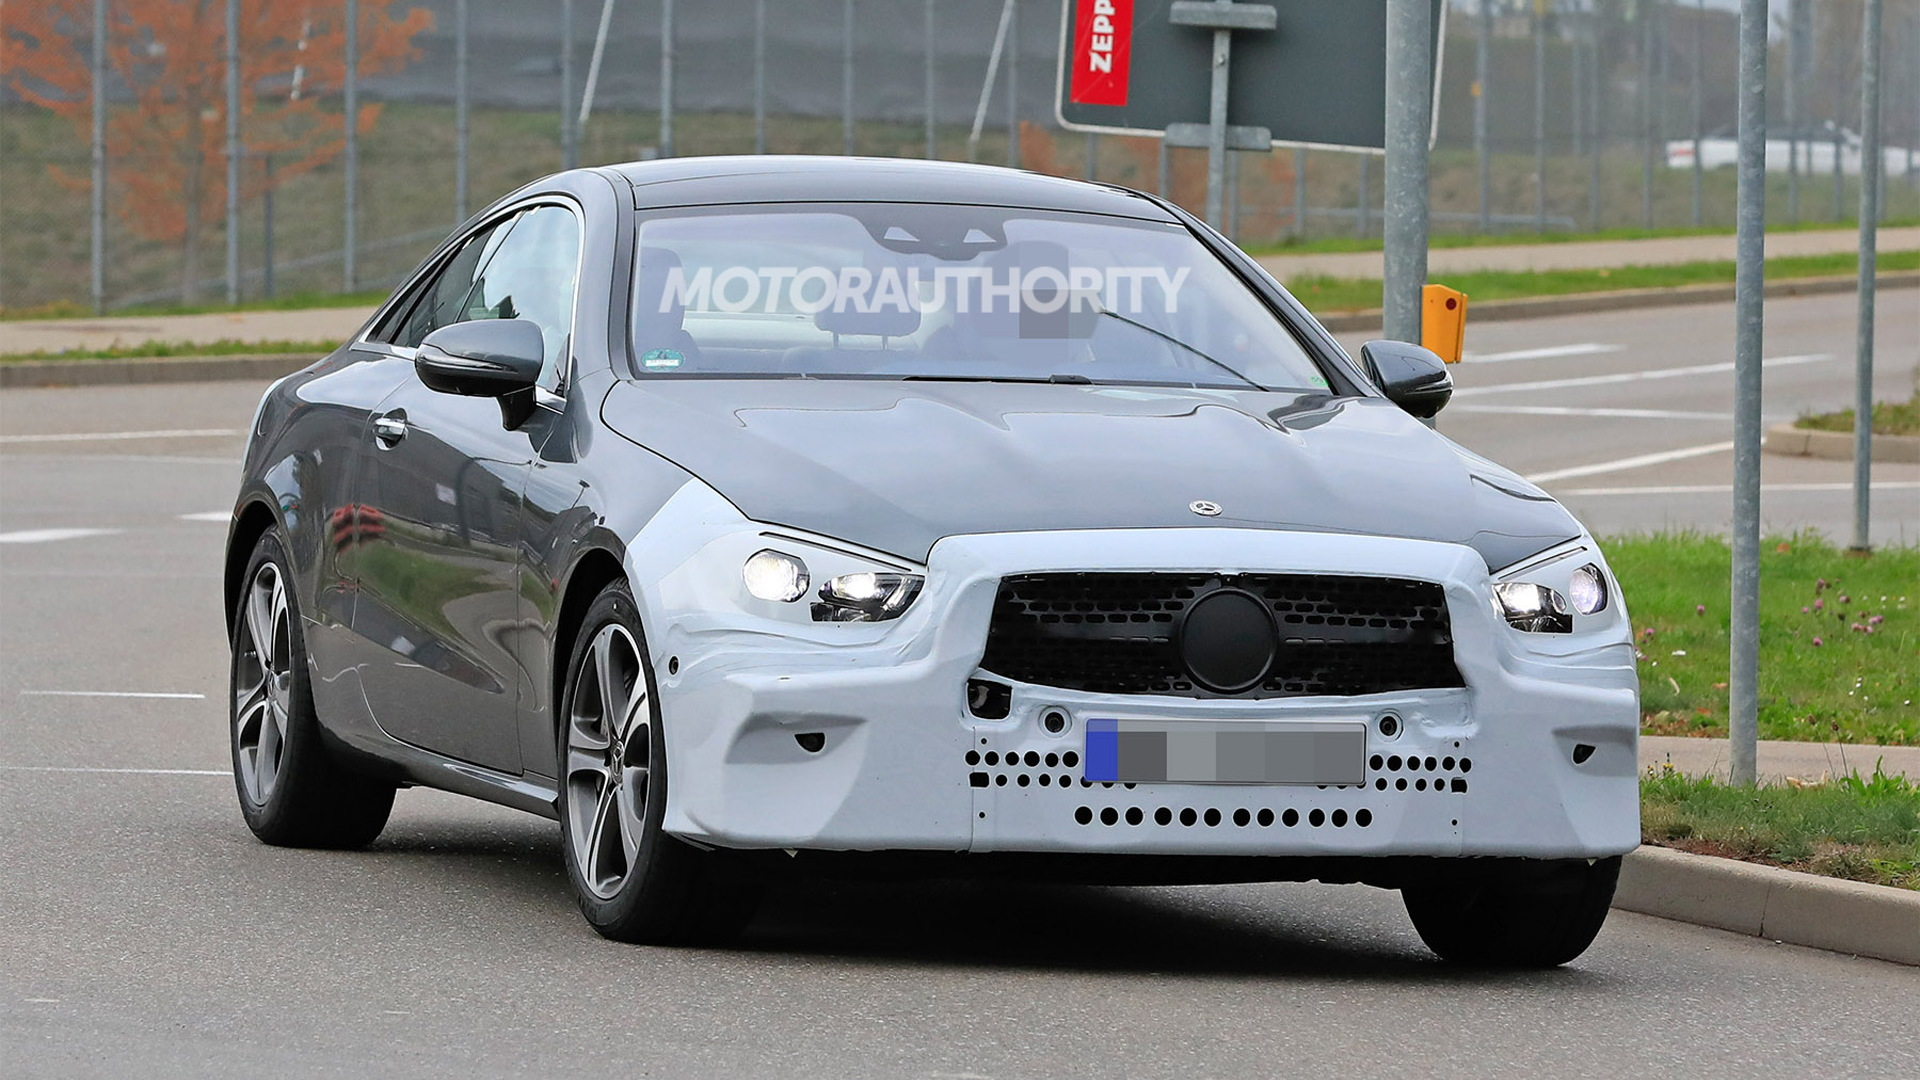 2021 Mercedes-Benz E-Class Coupe facelift spy shots - Image via S. Baldauf/SB-Medien